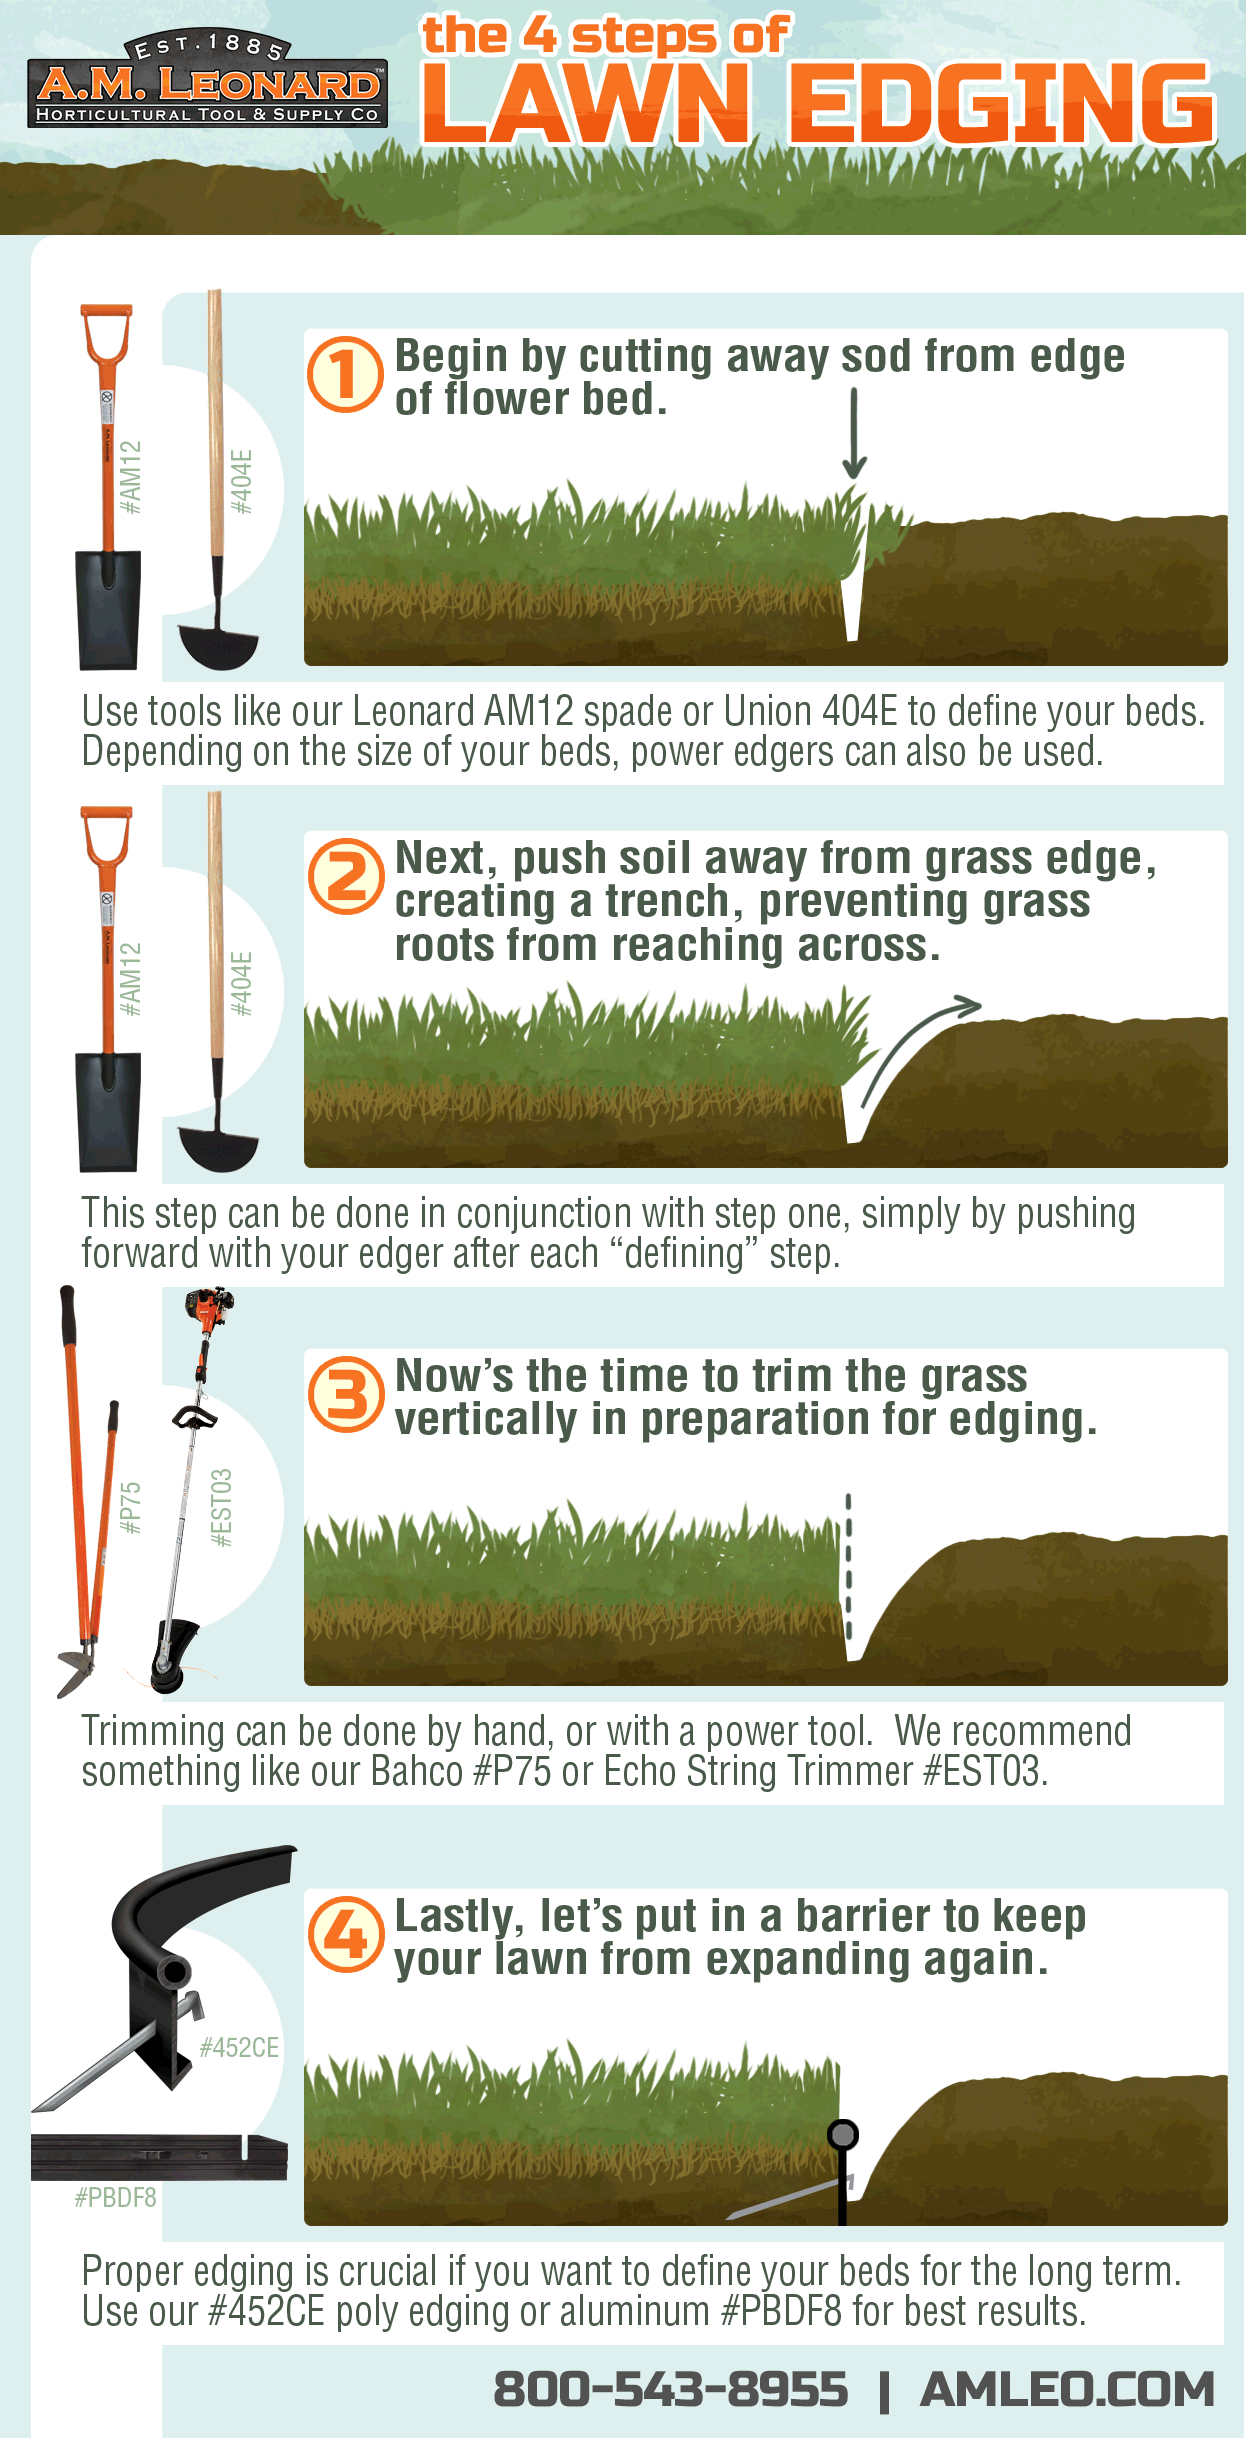 Lawn Edging: Broken Down Into Just A Few Steps To Get Lawns And Flower Beds